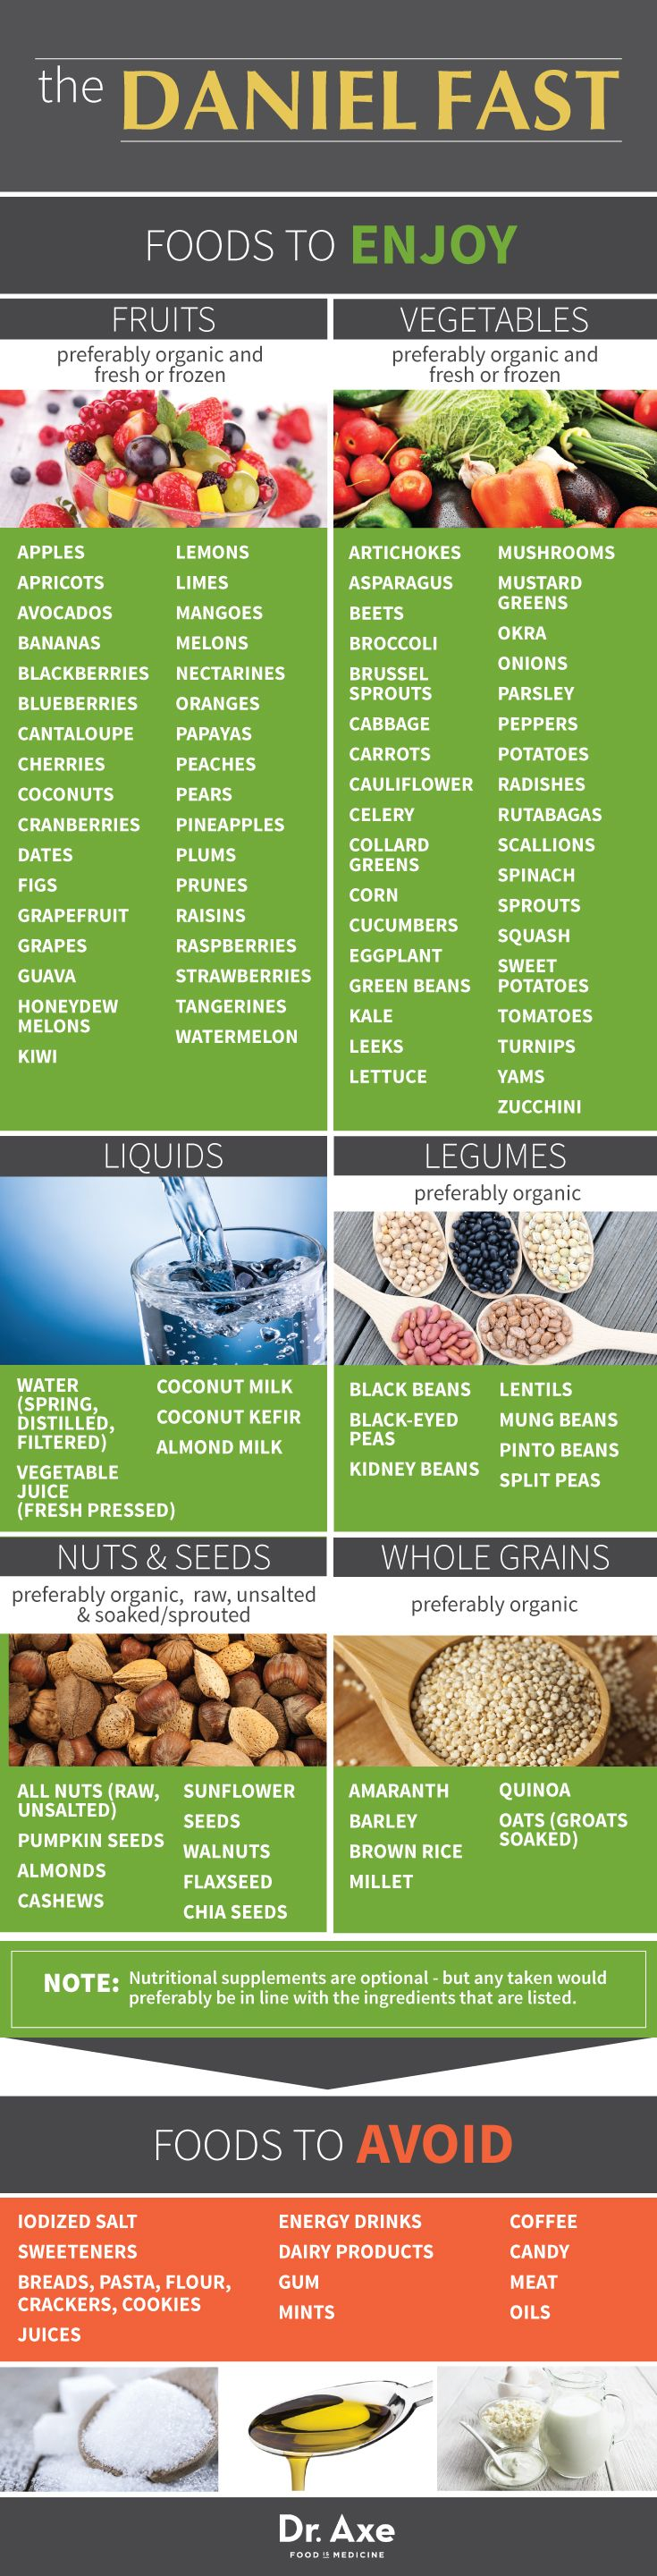 What Is the Daniel Fast? Foods, Benefits, Recipes - Dr. Axe